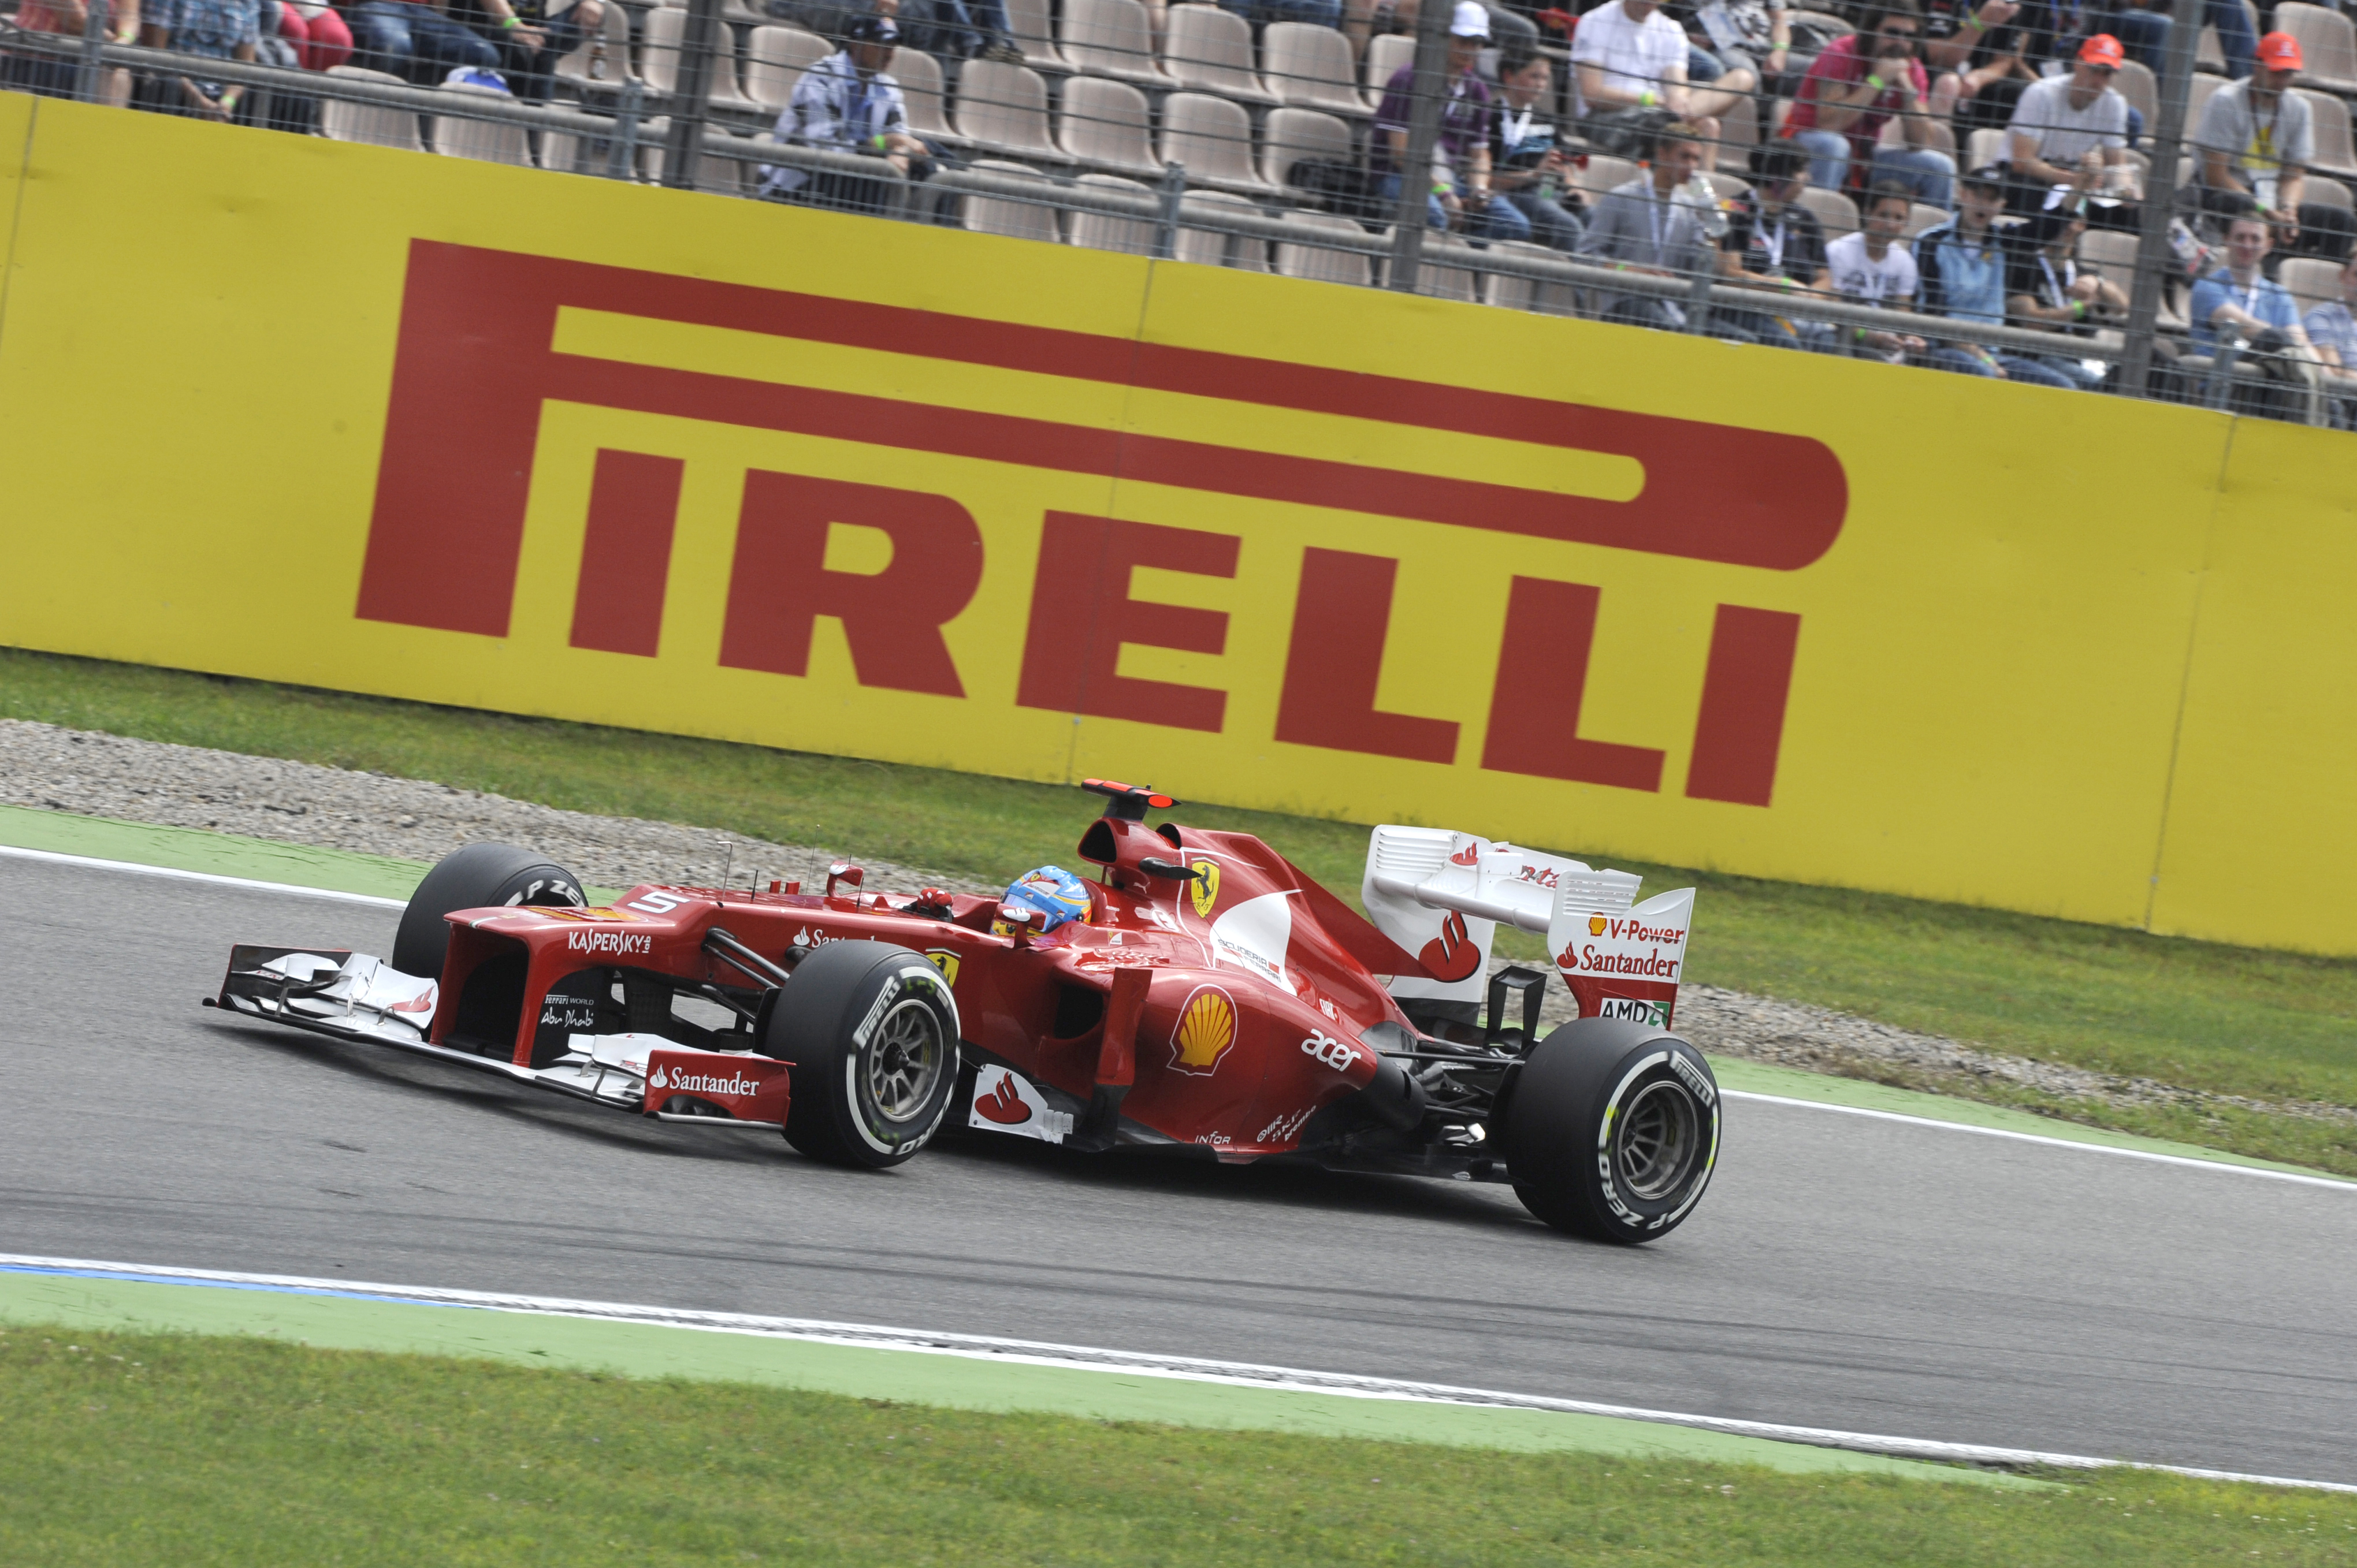 Alonso becomes a three-time winner with Pirelli in 2012